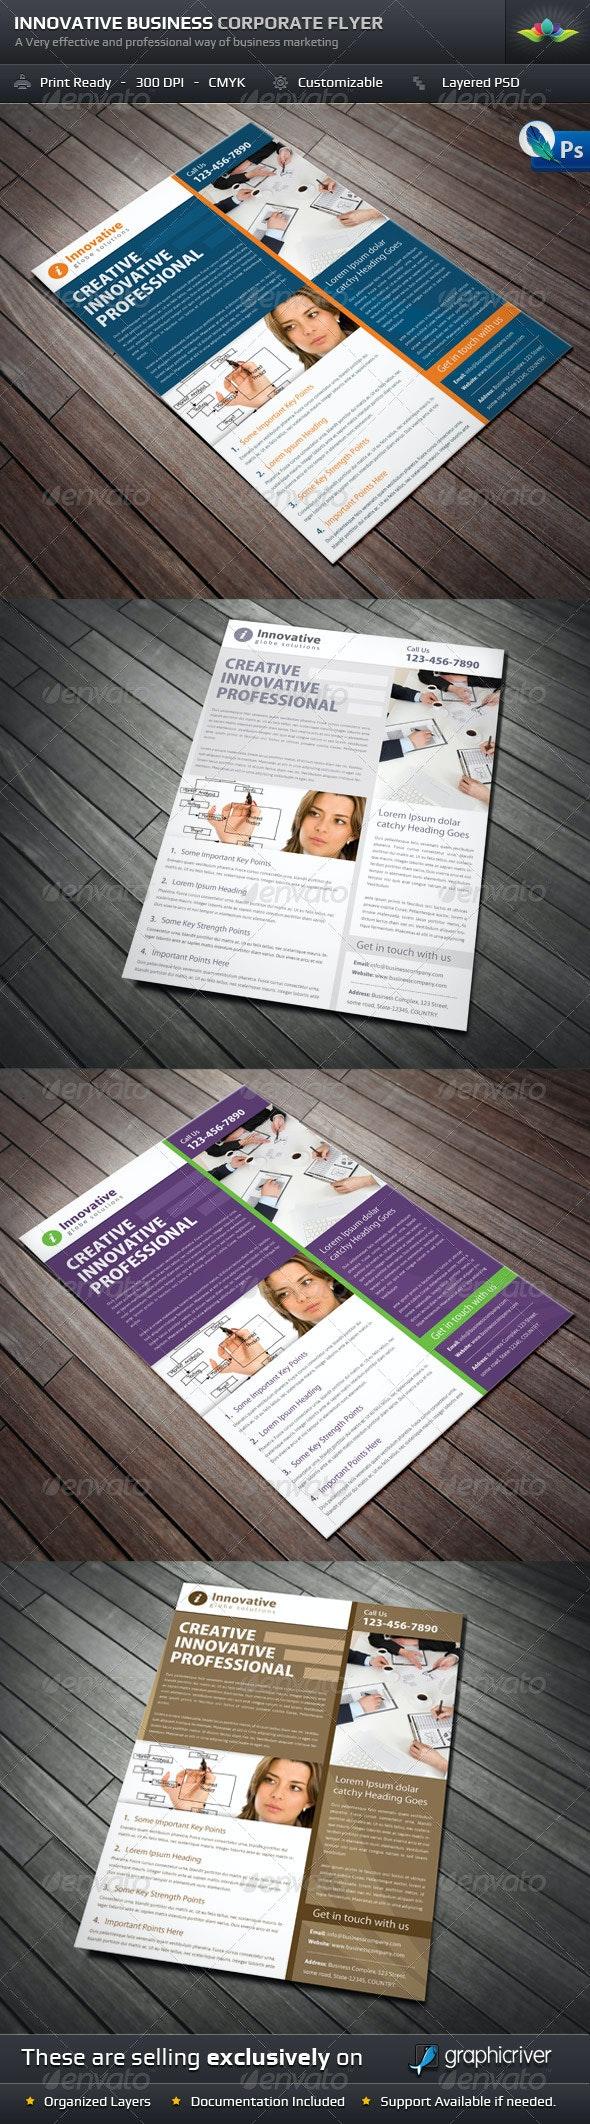 Innovative Business Corporate Flyer - Corporate Flyers